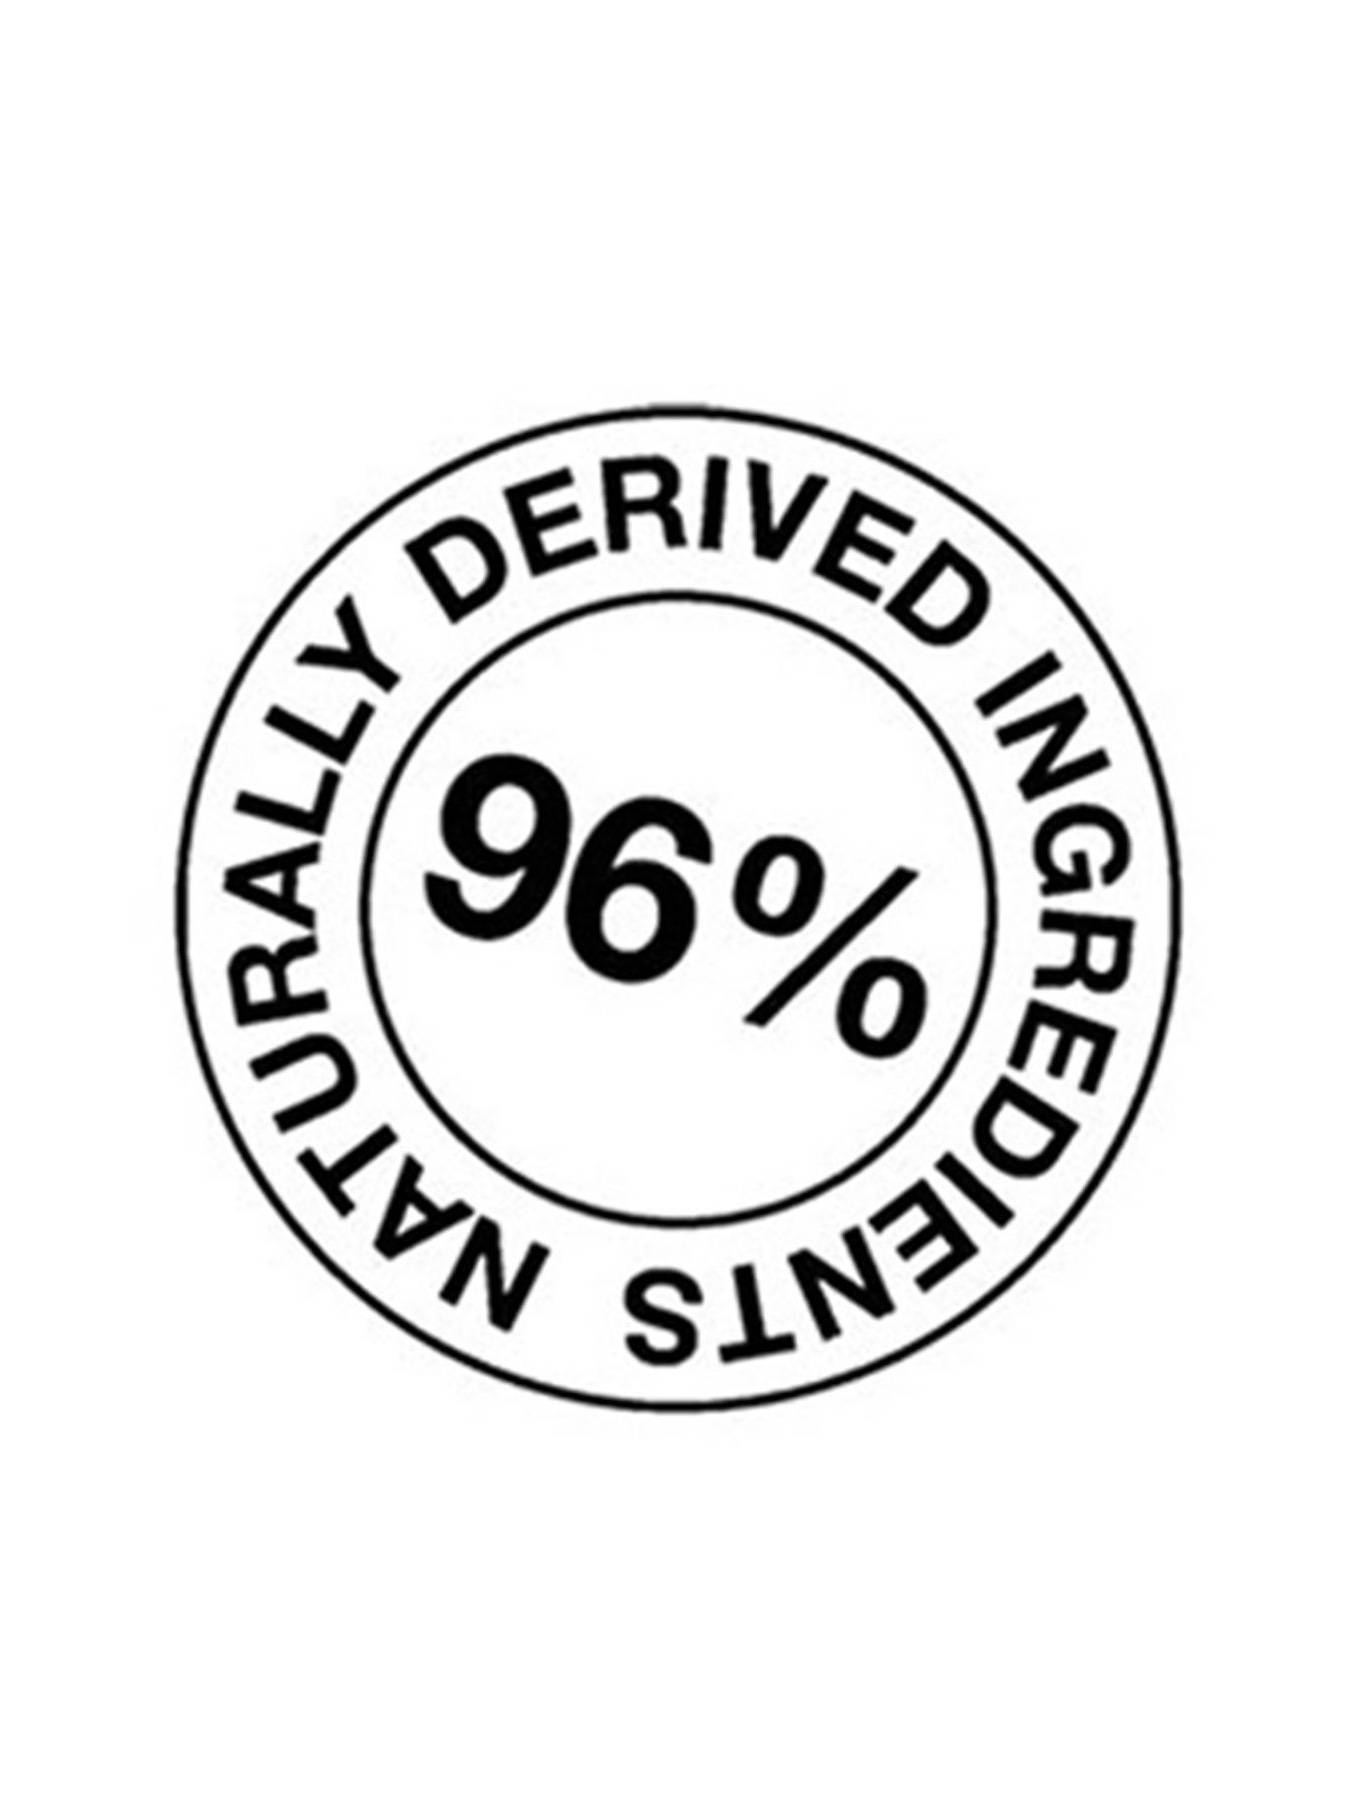 96% Naturally Derived Ingredients badge.